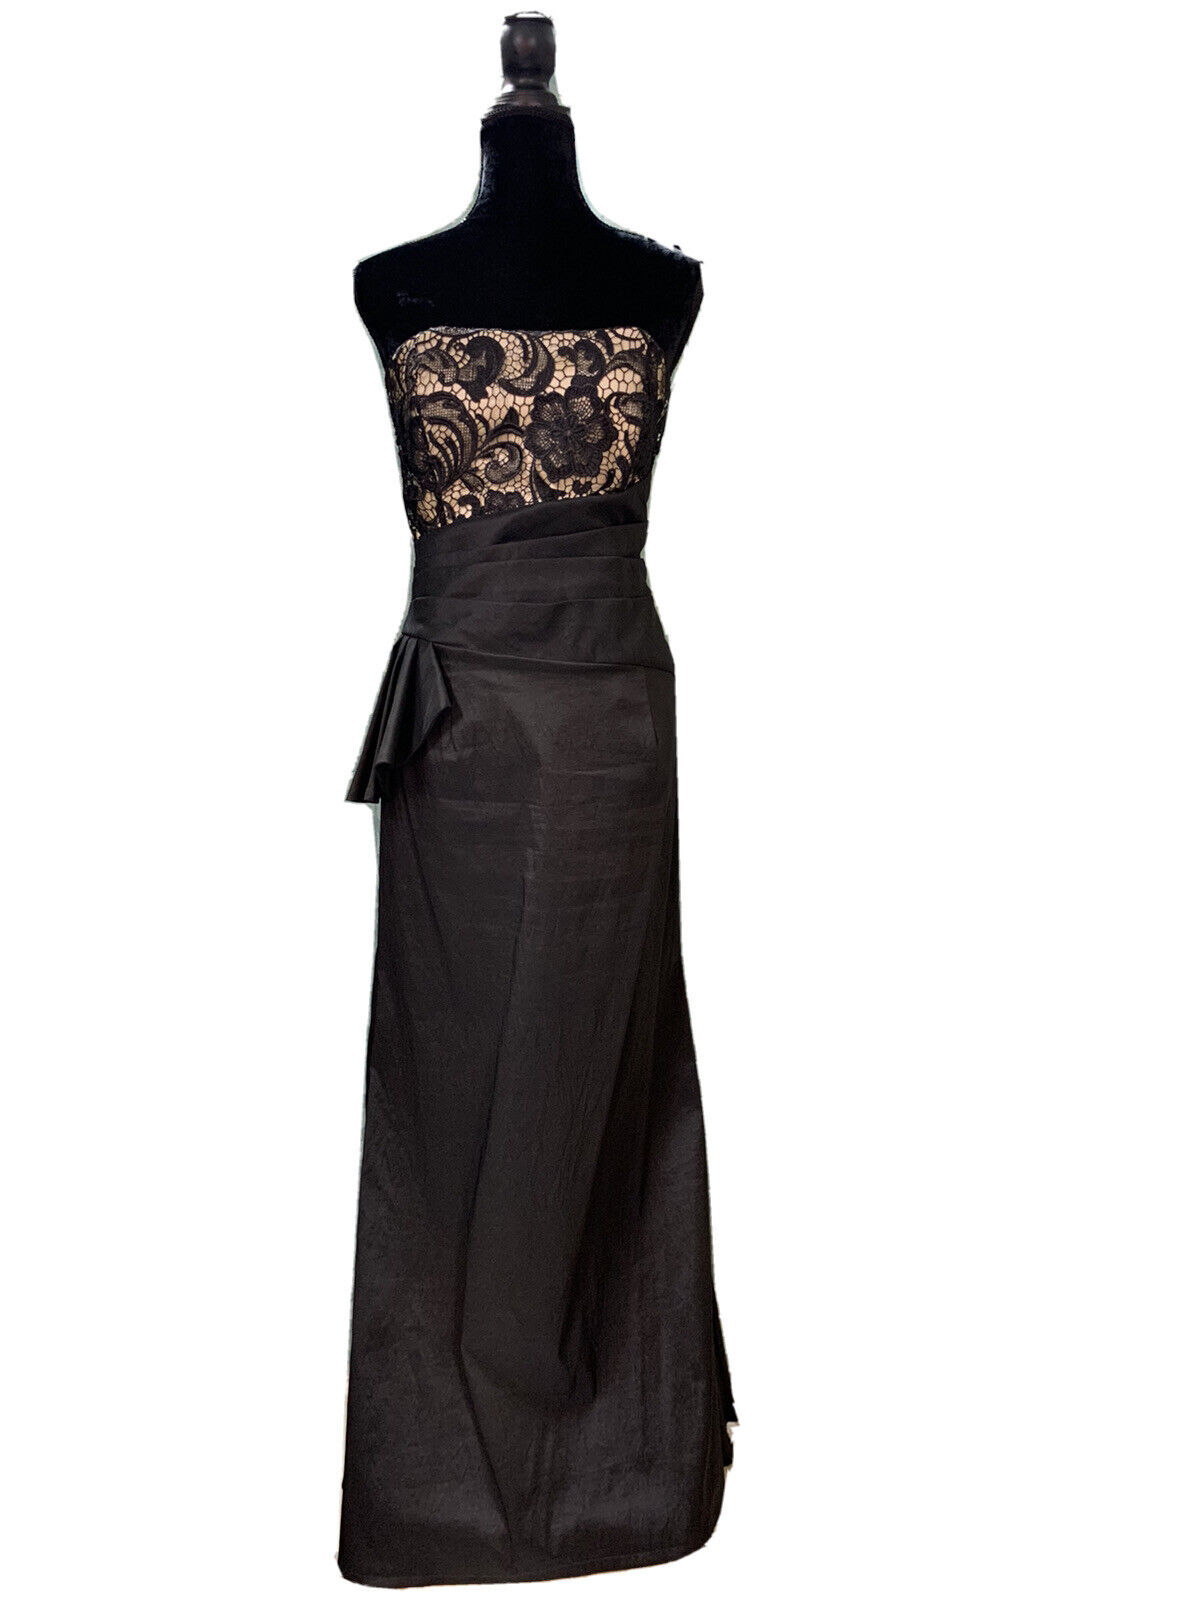 10-12 Black Prom Party Homecoming Dance Pageant MOTB Formal evening Gown Dress